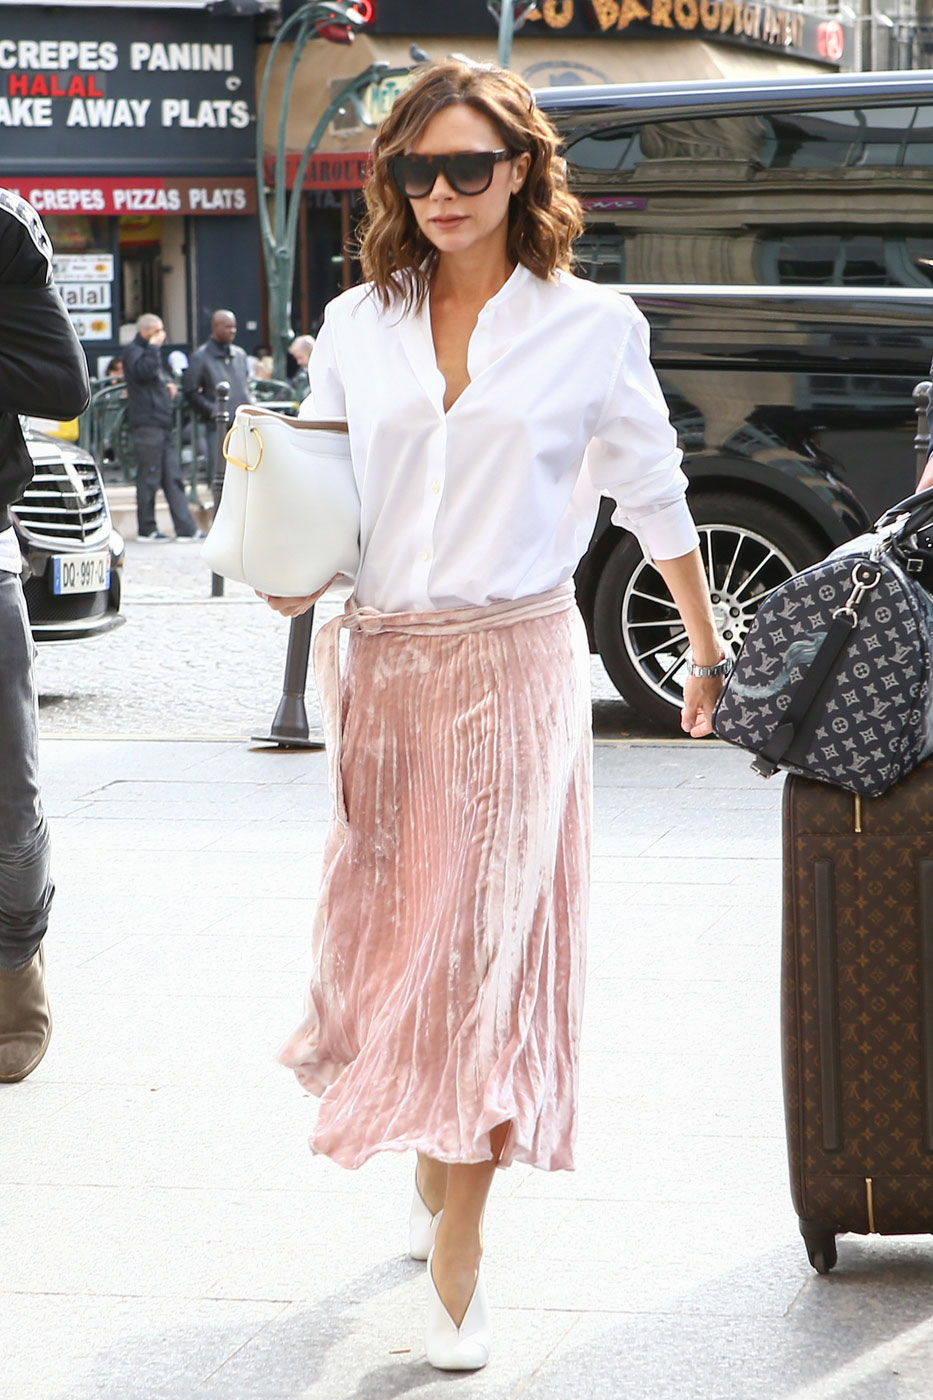 Victoria Beckham looks lovely in a pink pleated skirt and white blouse.